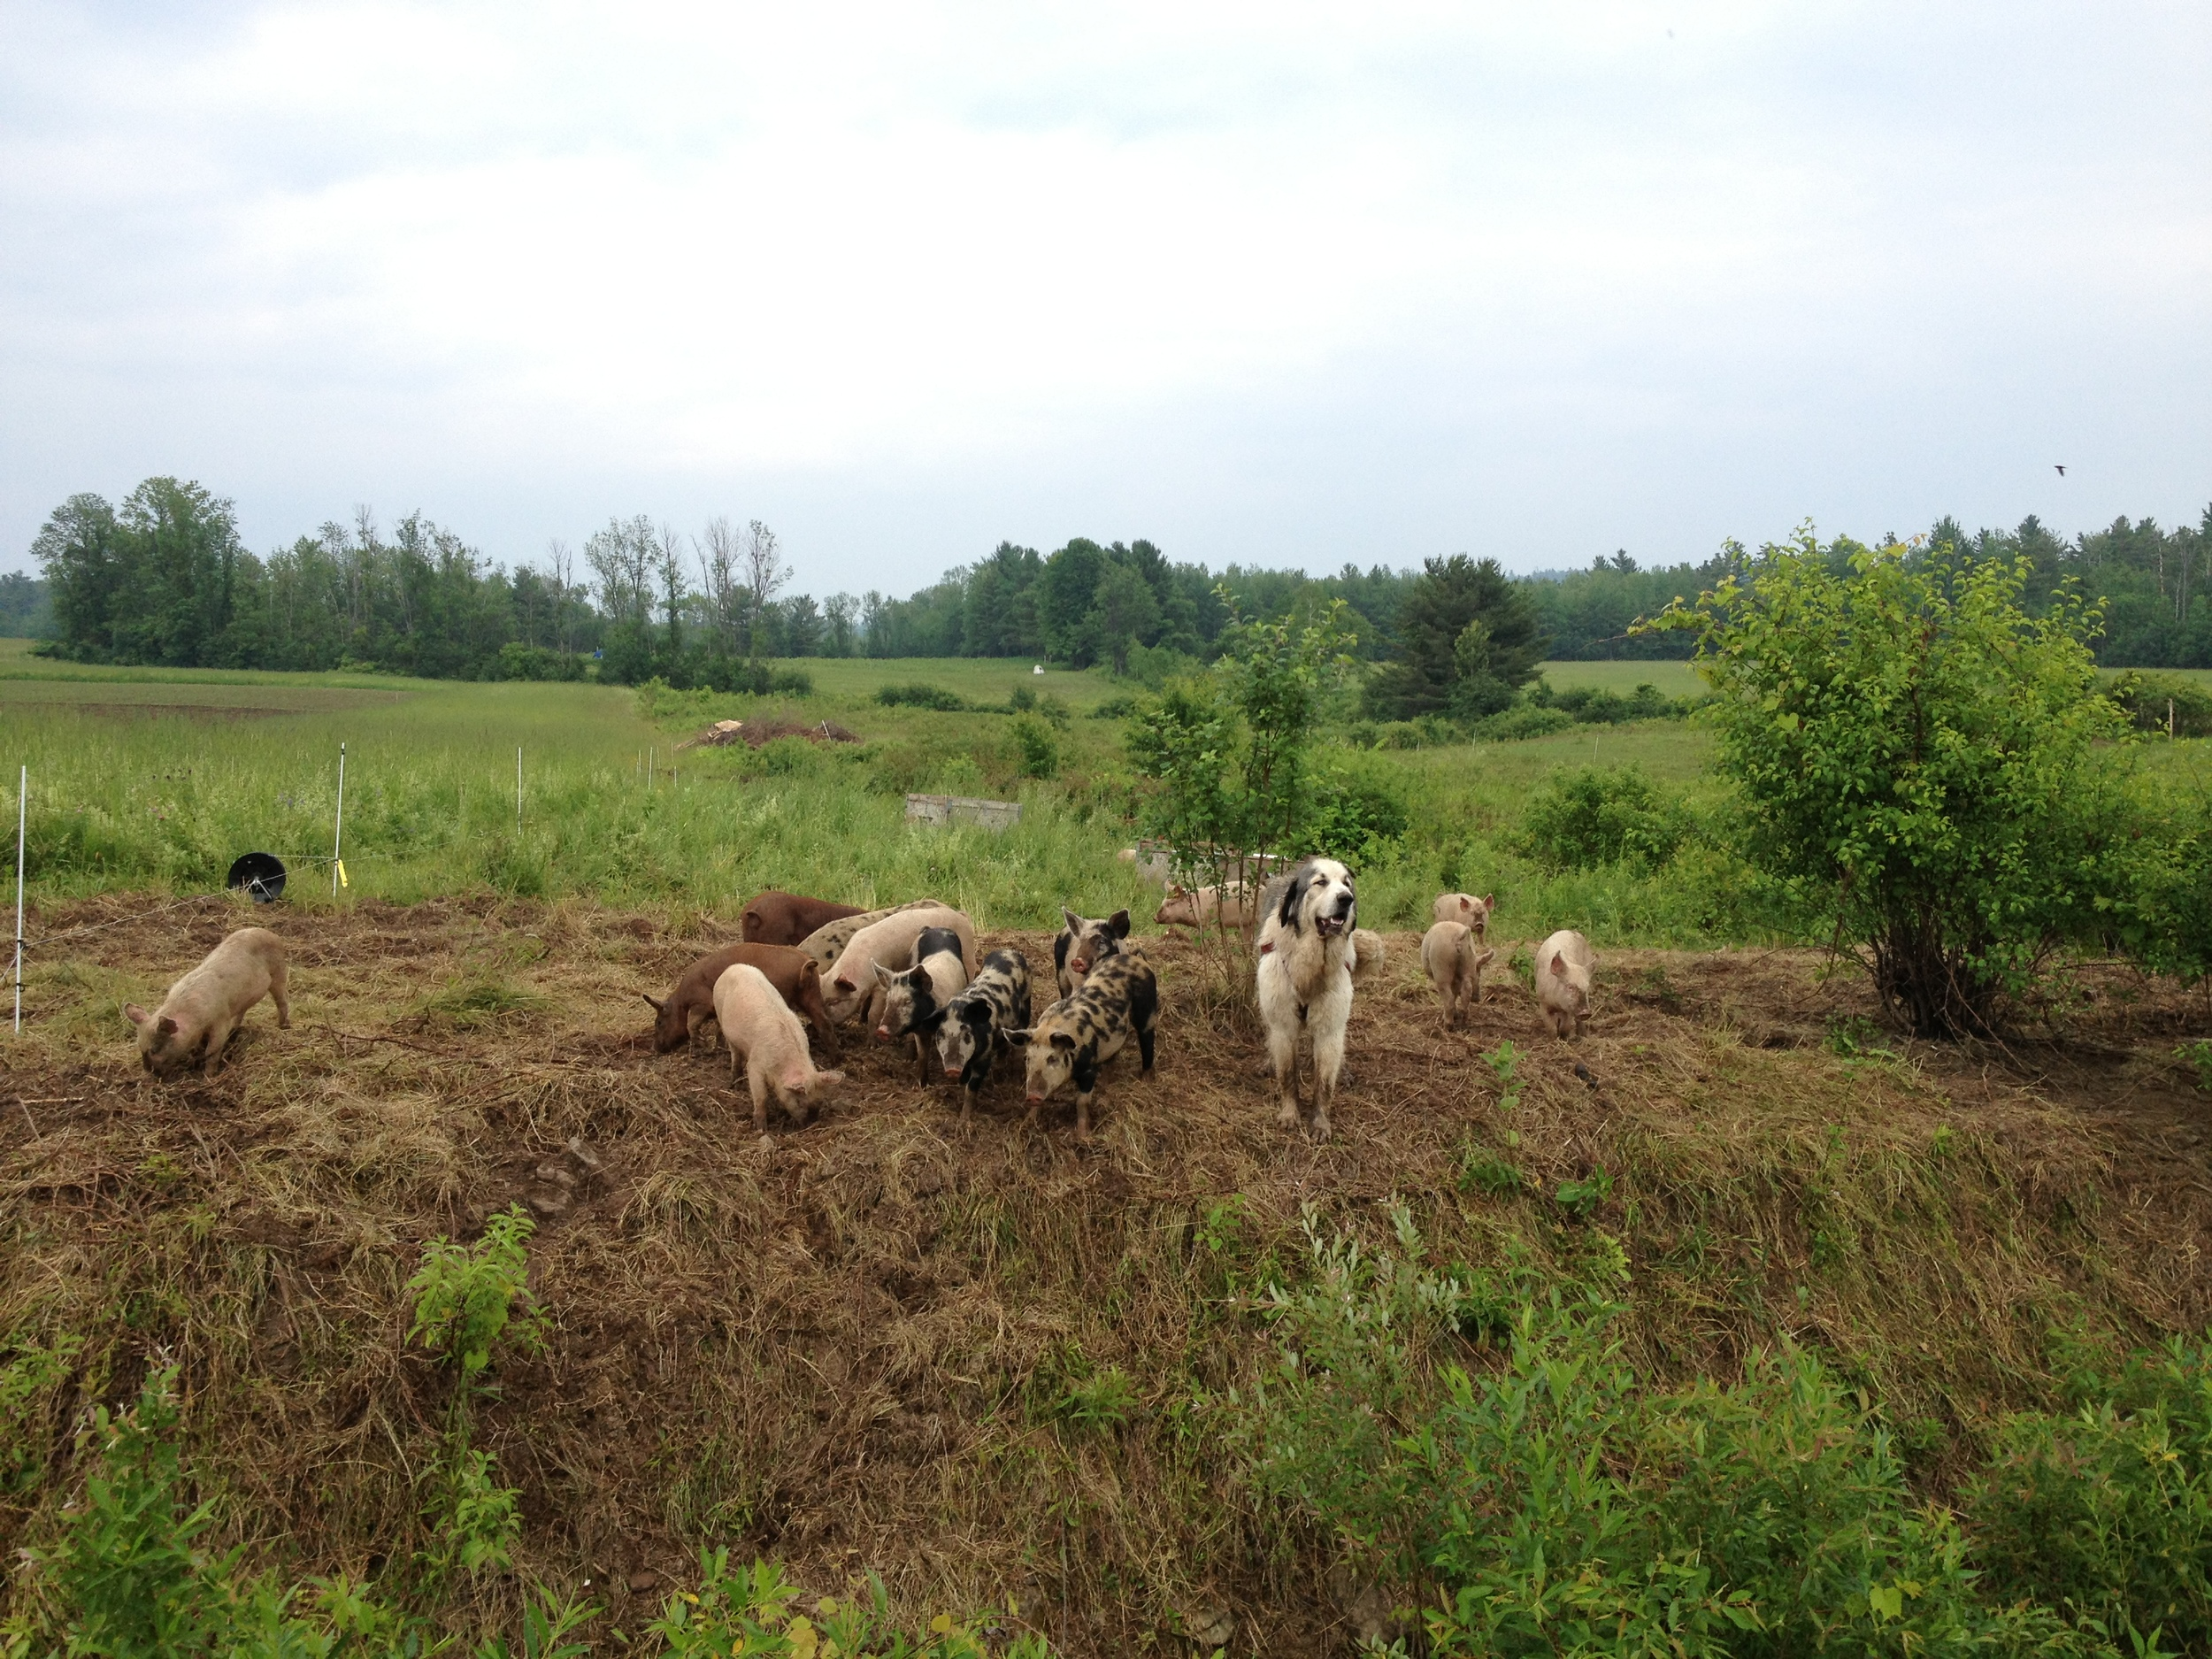 Their livestock guardian dog moves with the pigs as their electric fence moves around the woods and ditches of the farm. They tried to train him to guard the chickens as well, but he seems to think that he's a pig as well.